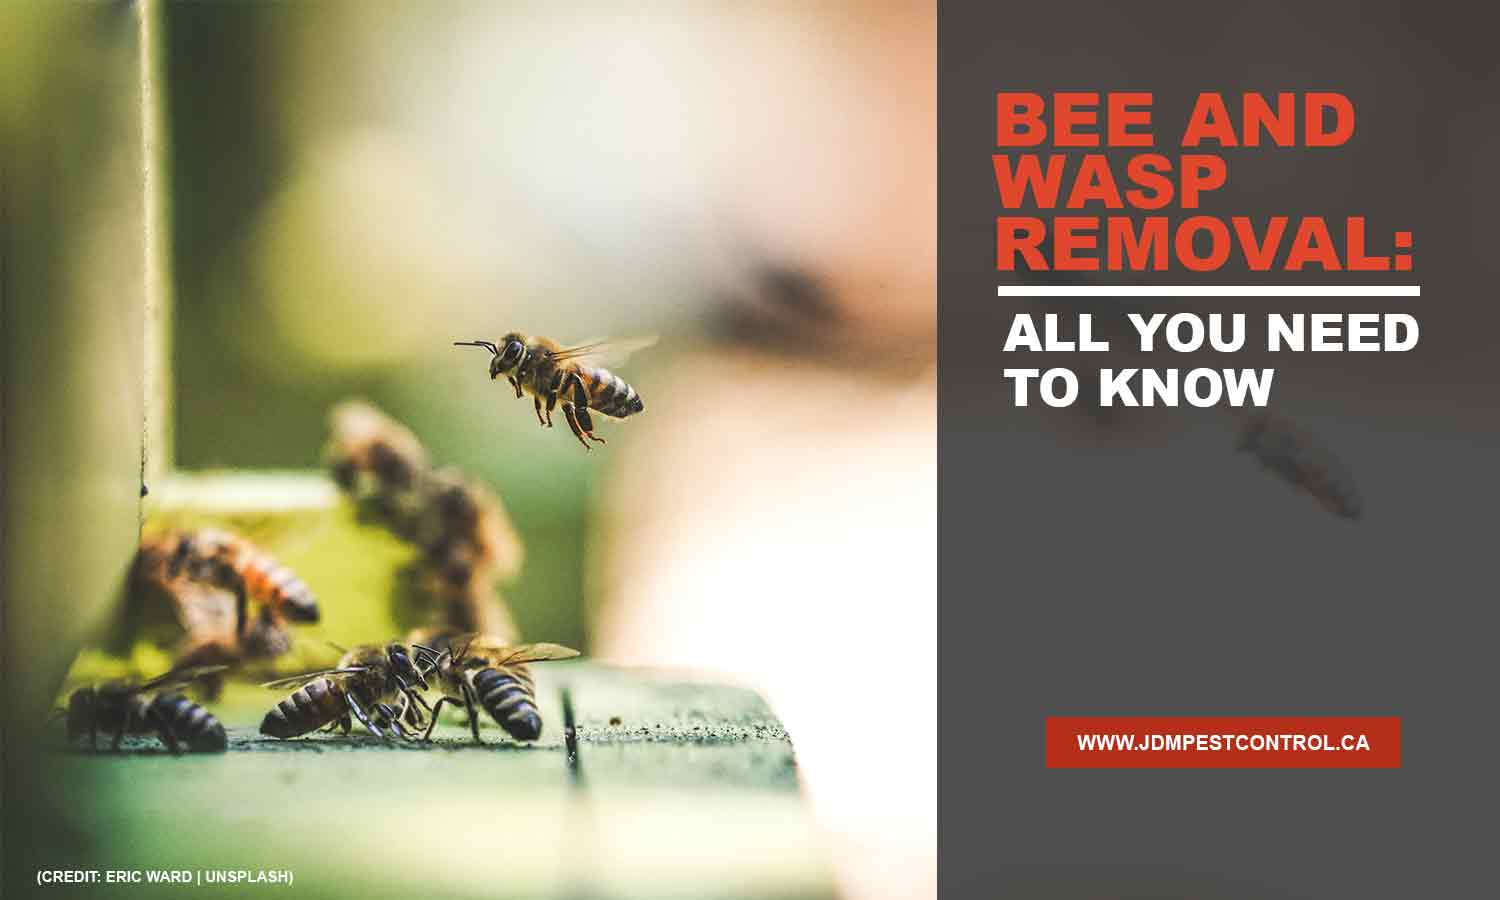 Bee and Wasp Removal: All You Need to Know